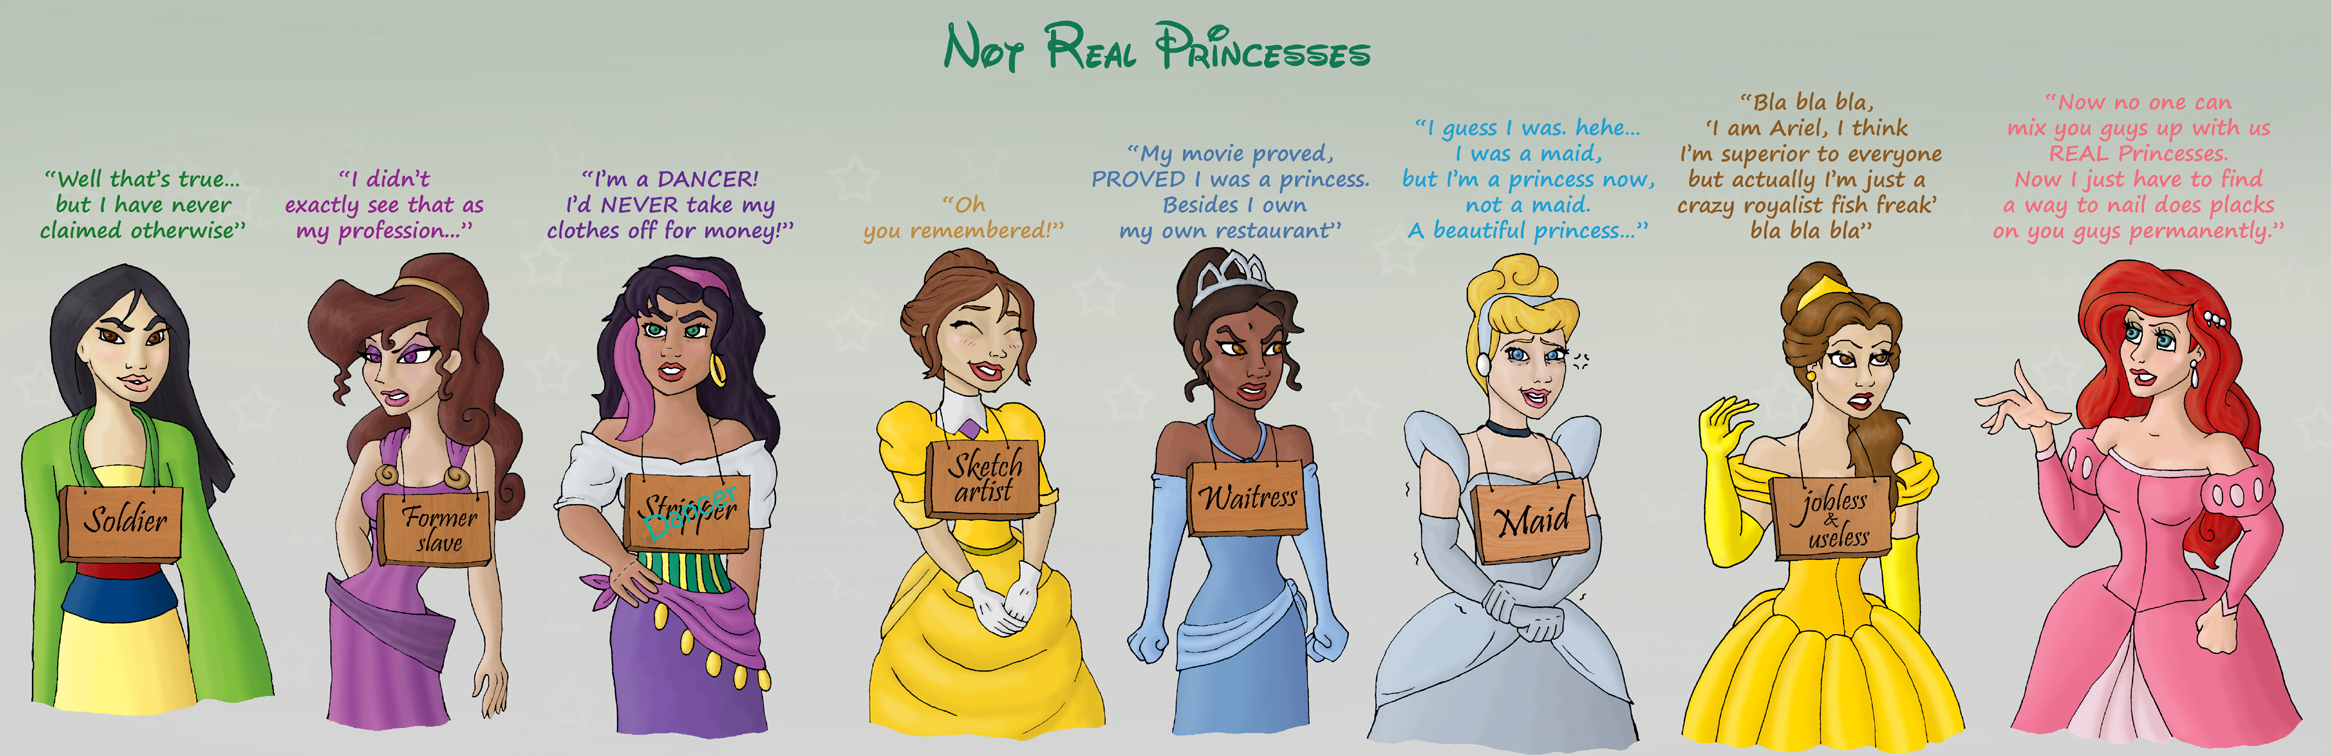 not real princesses